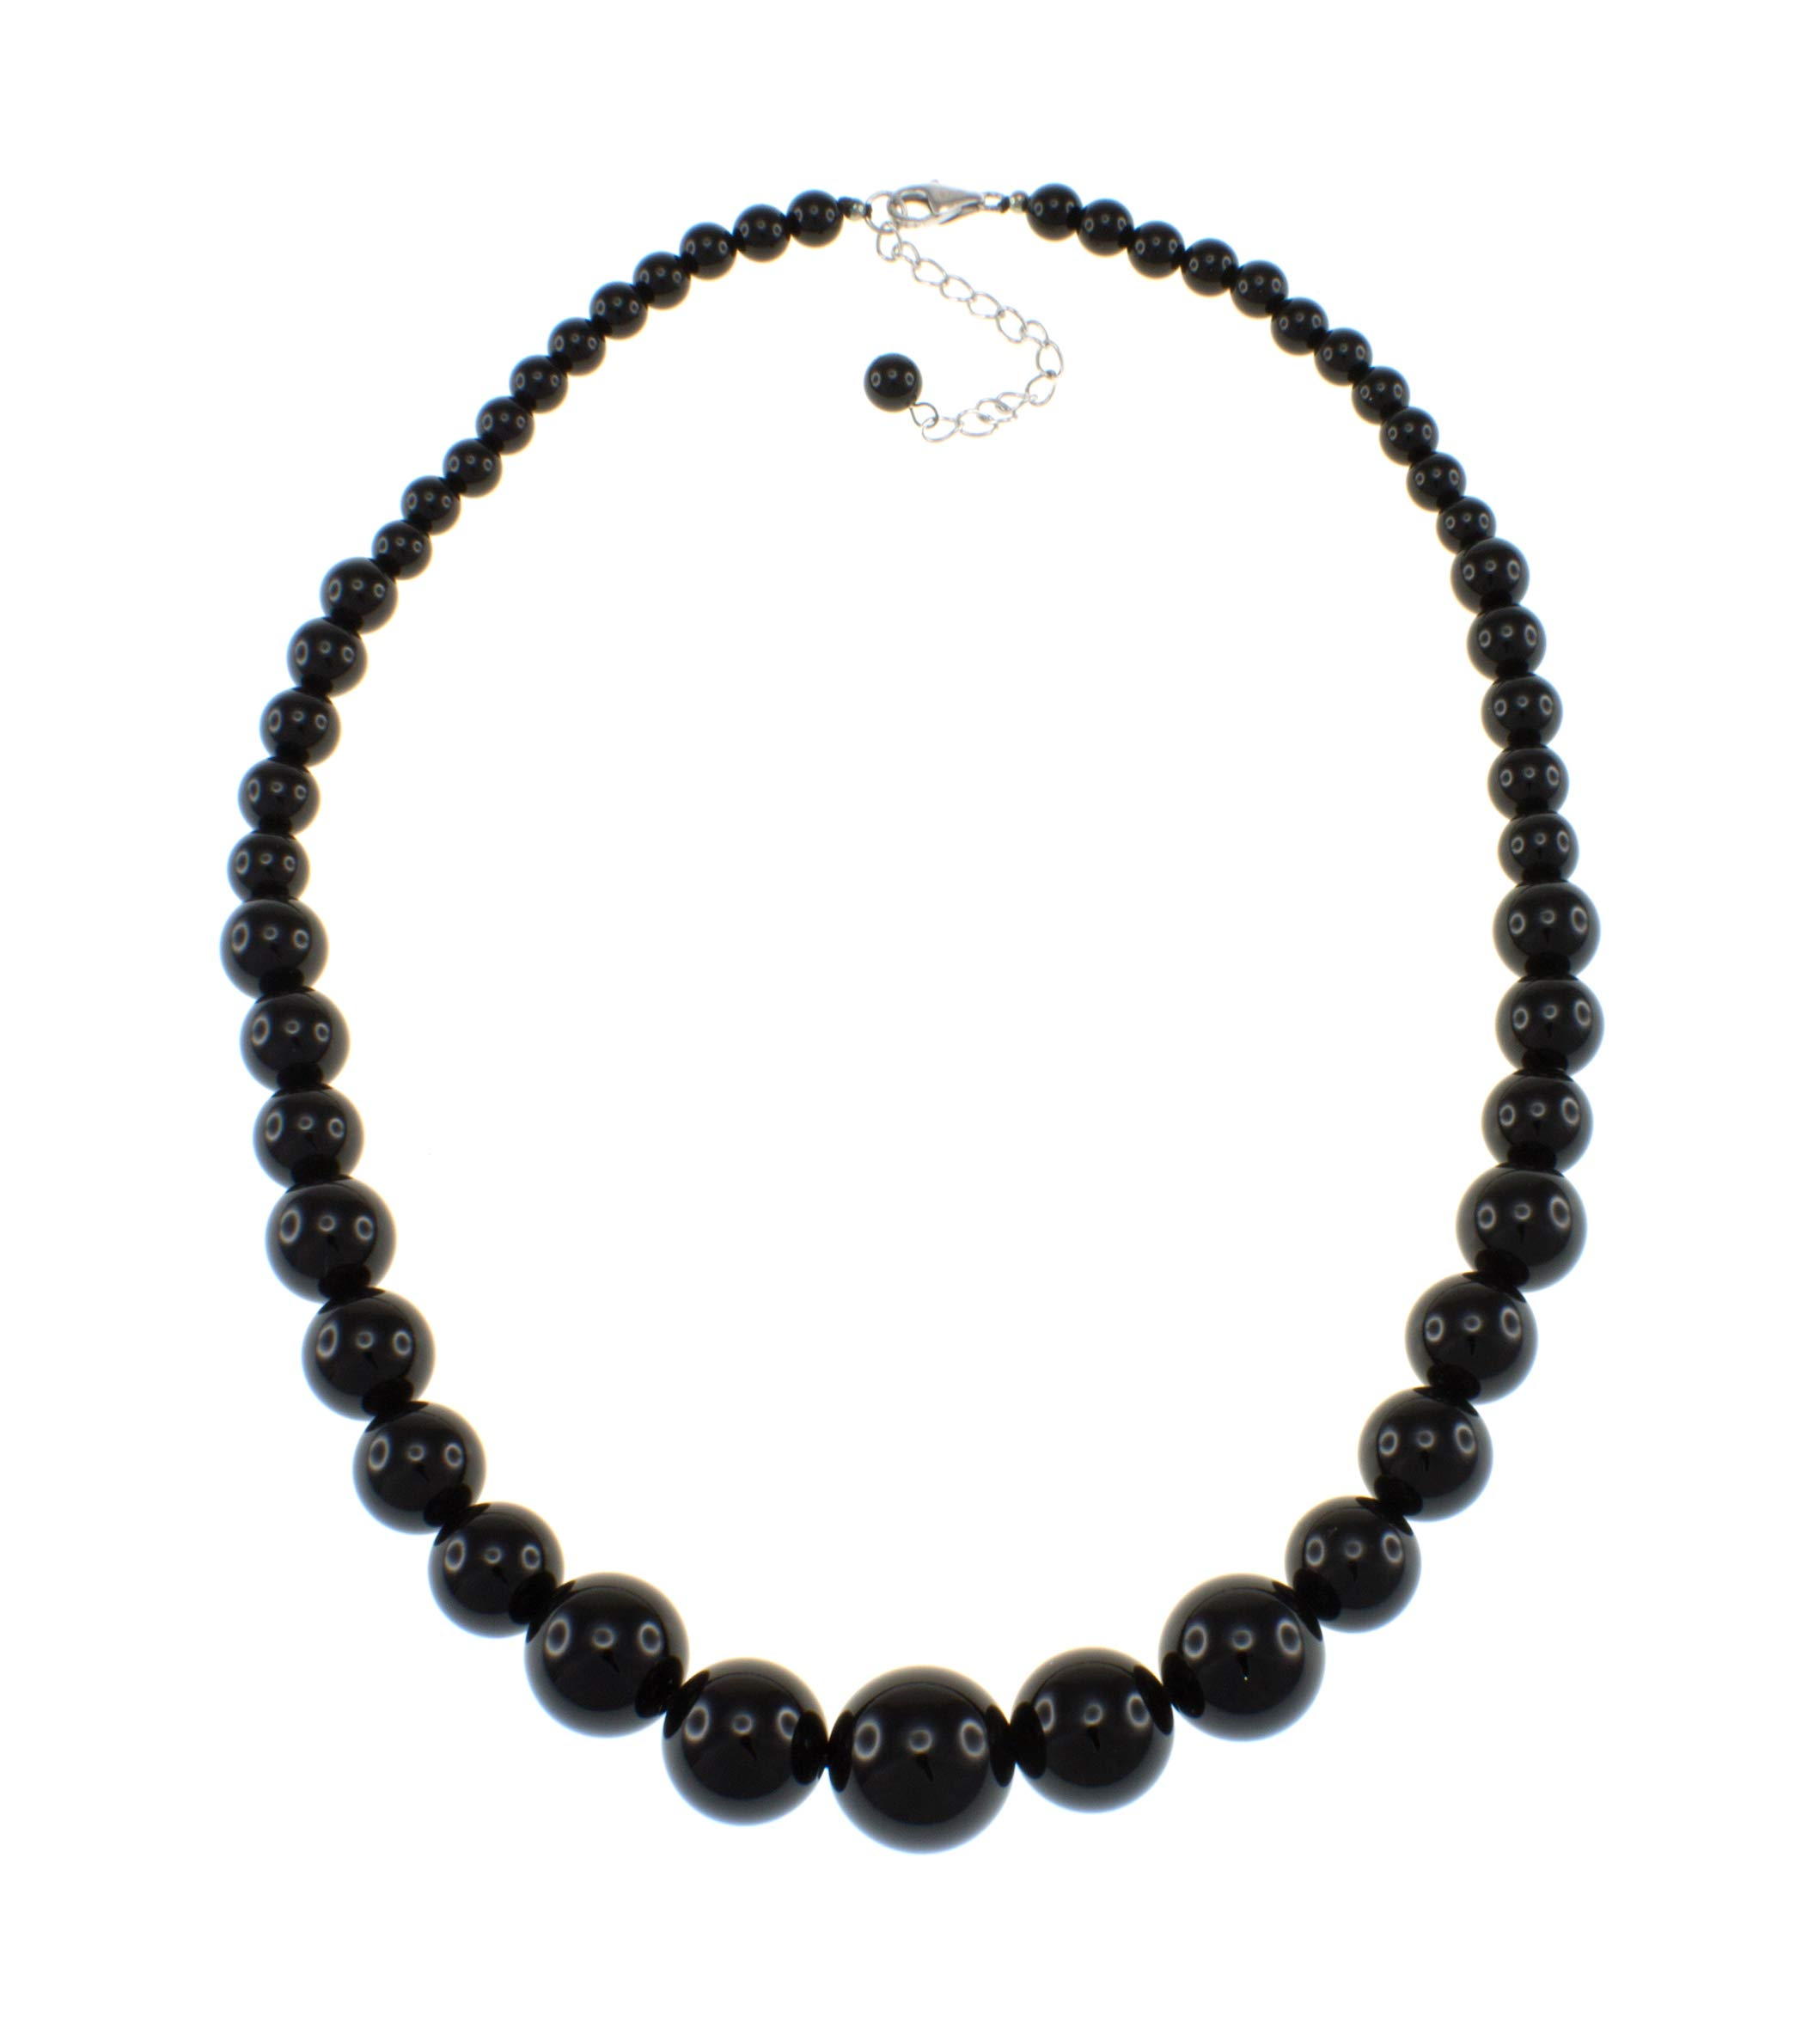 Pearlz Ocean Natural Black Onyx Round Journey Beads Starnd Necklace for Women